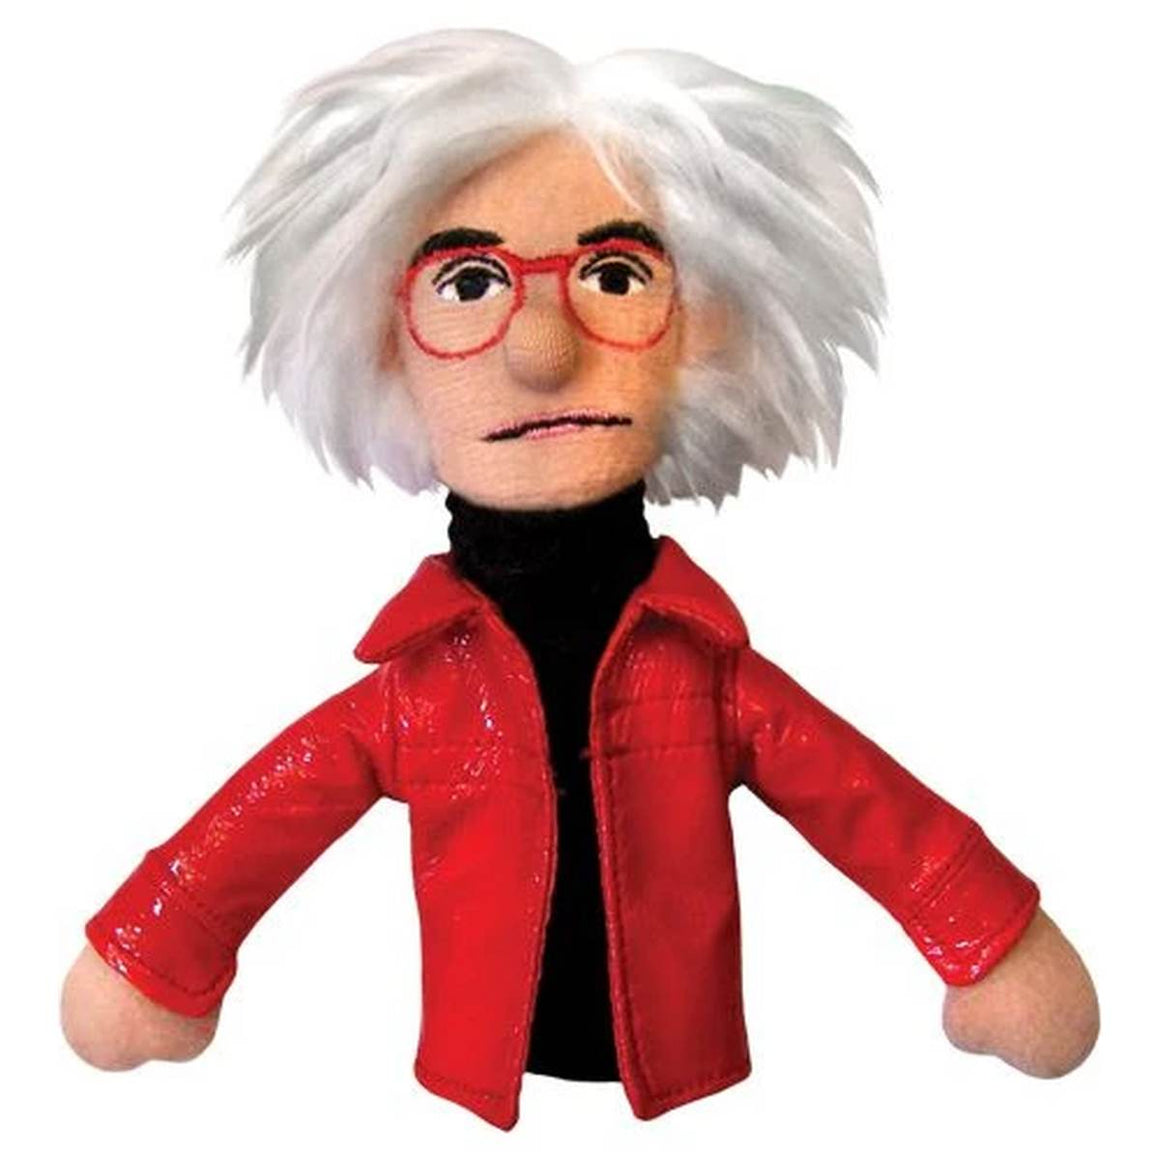 A soft fabric Andy Warhol finger puppet wearing a  black turtleneck, red jacket and red glasses